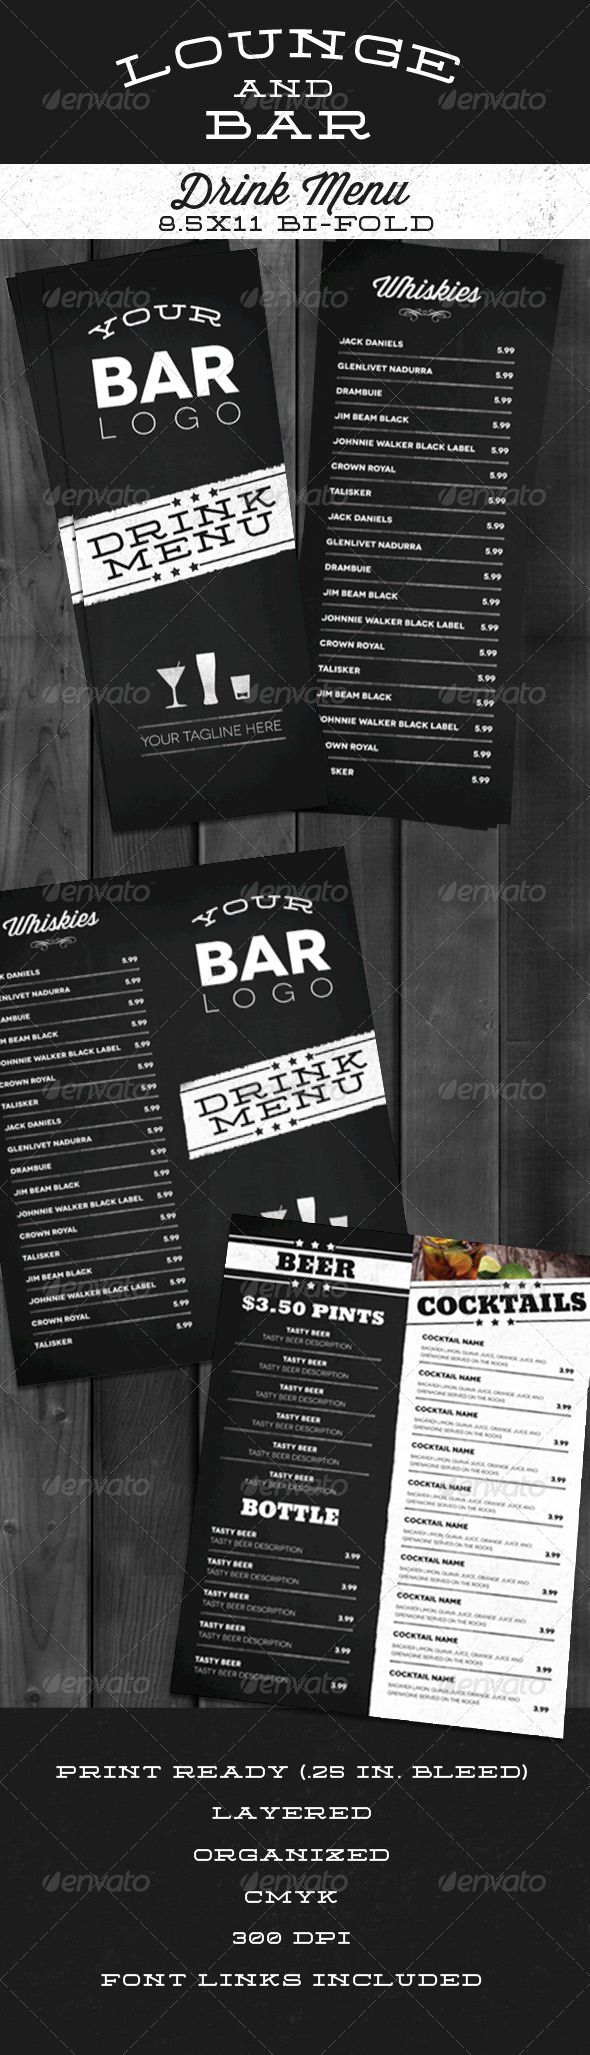 Best bar menu ideas on pinterest design cafe